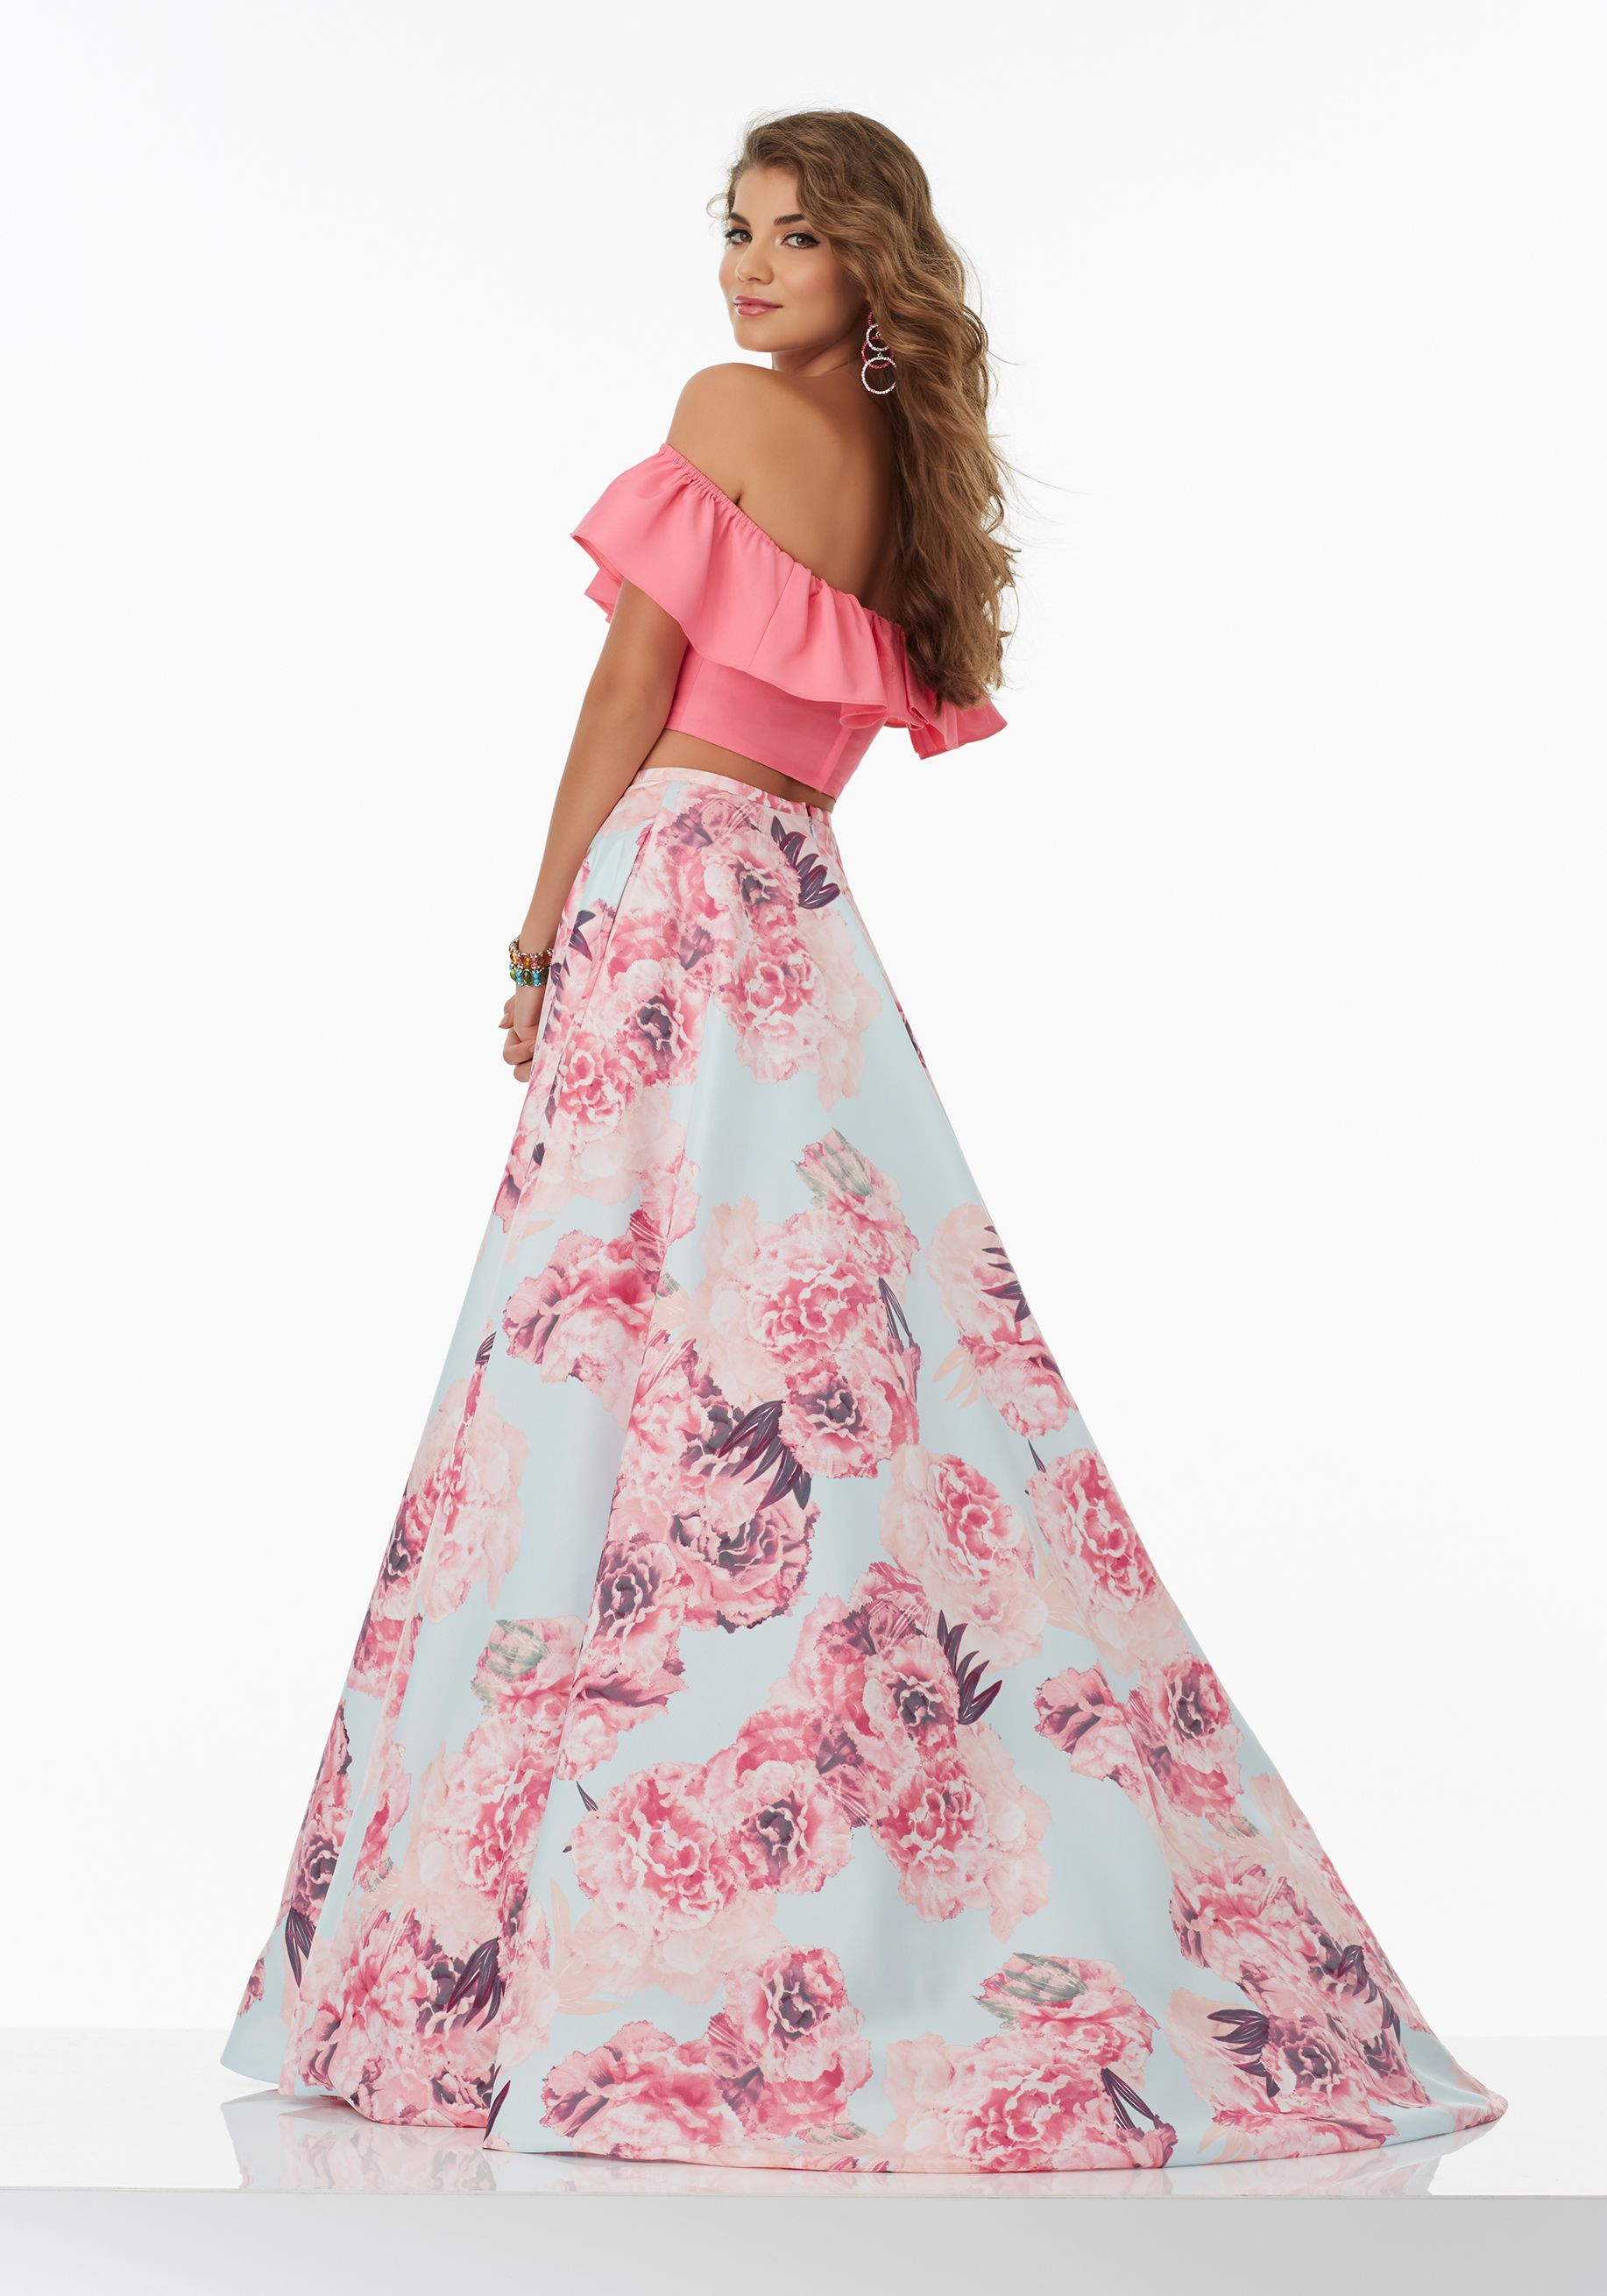 876e26cca68 Prom Dresses by Morilee designed by Madeline Gardner. Fun and flirty Two-Piece  Prom Dress with Off-the-Shoulder Ruffled Neckline and Floral Taffeta Skirt.